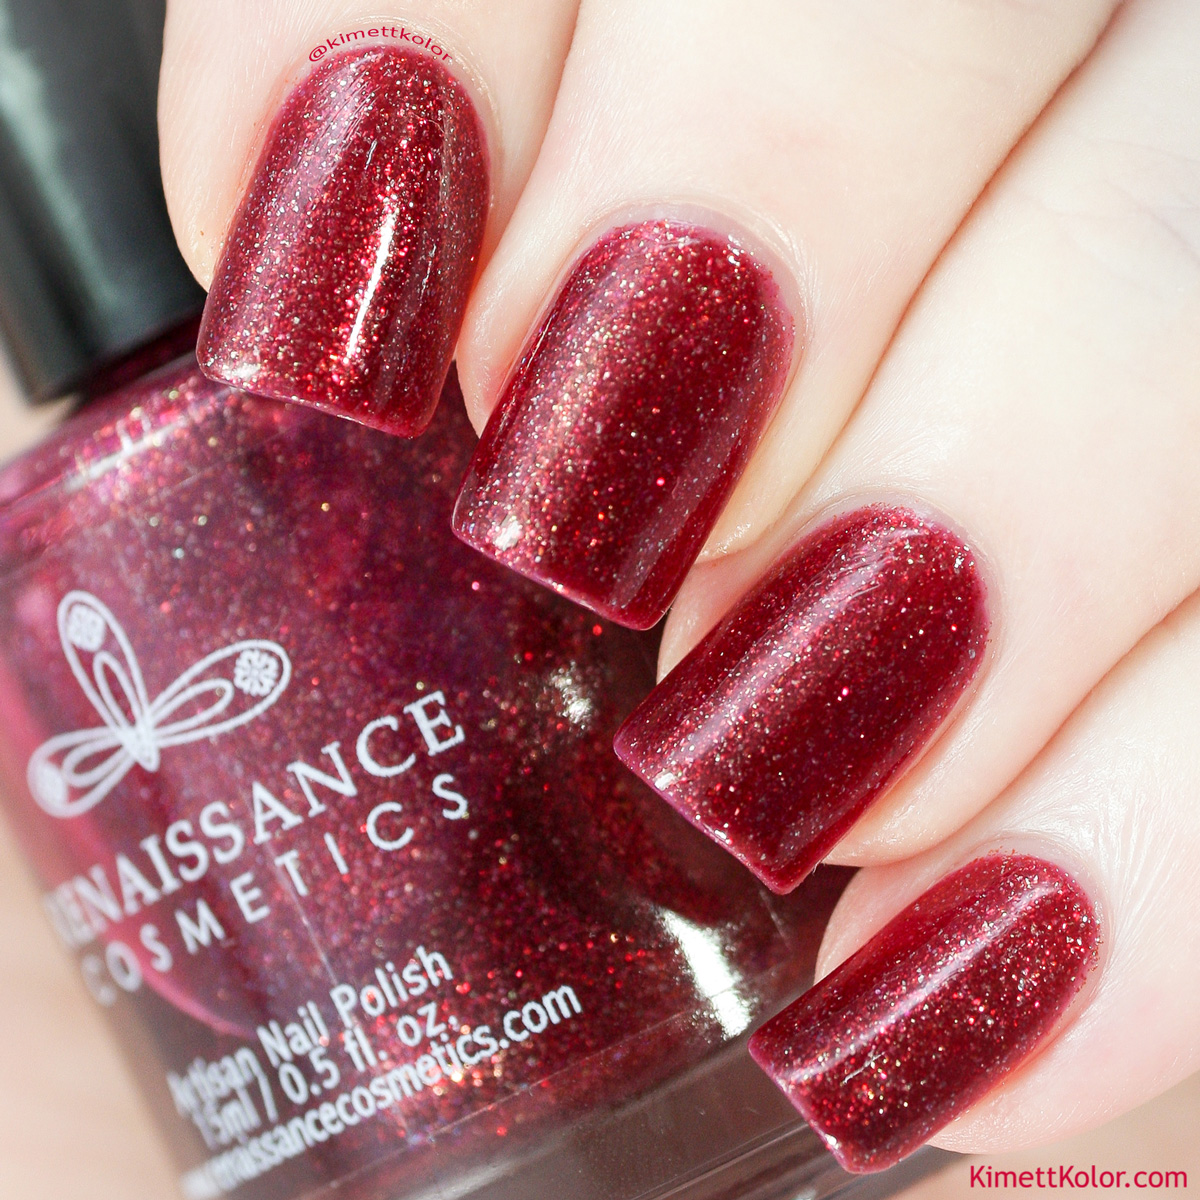 Kimett Kolor Polish Swatch Blood Lust Renaissance Cosmetics